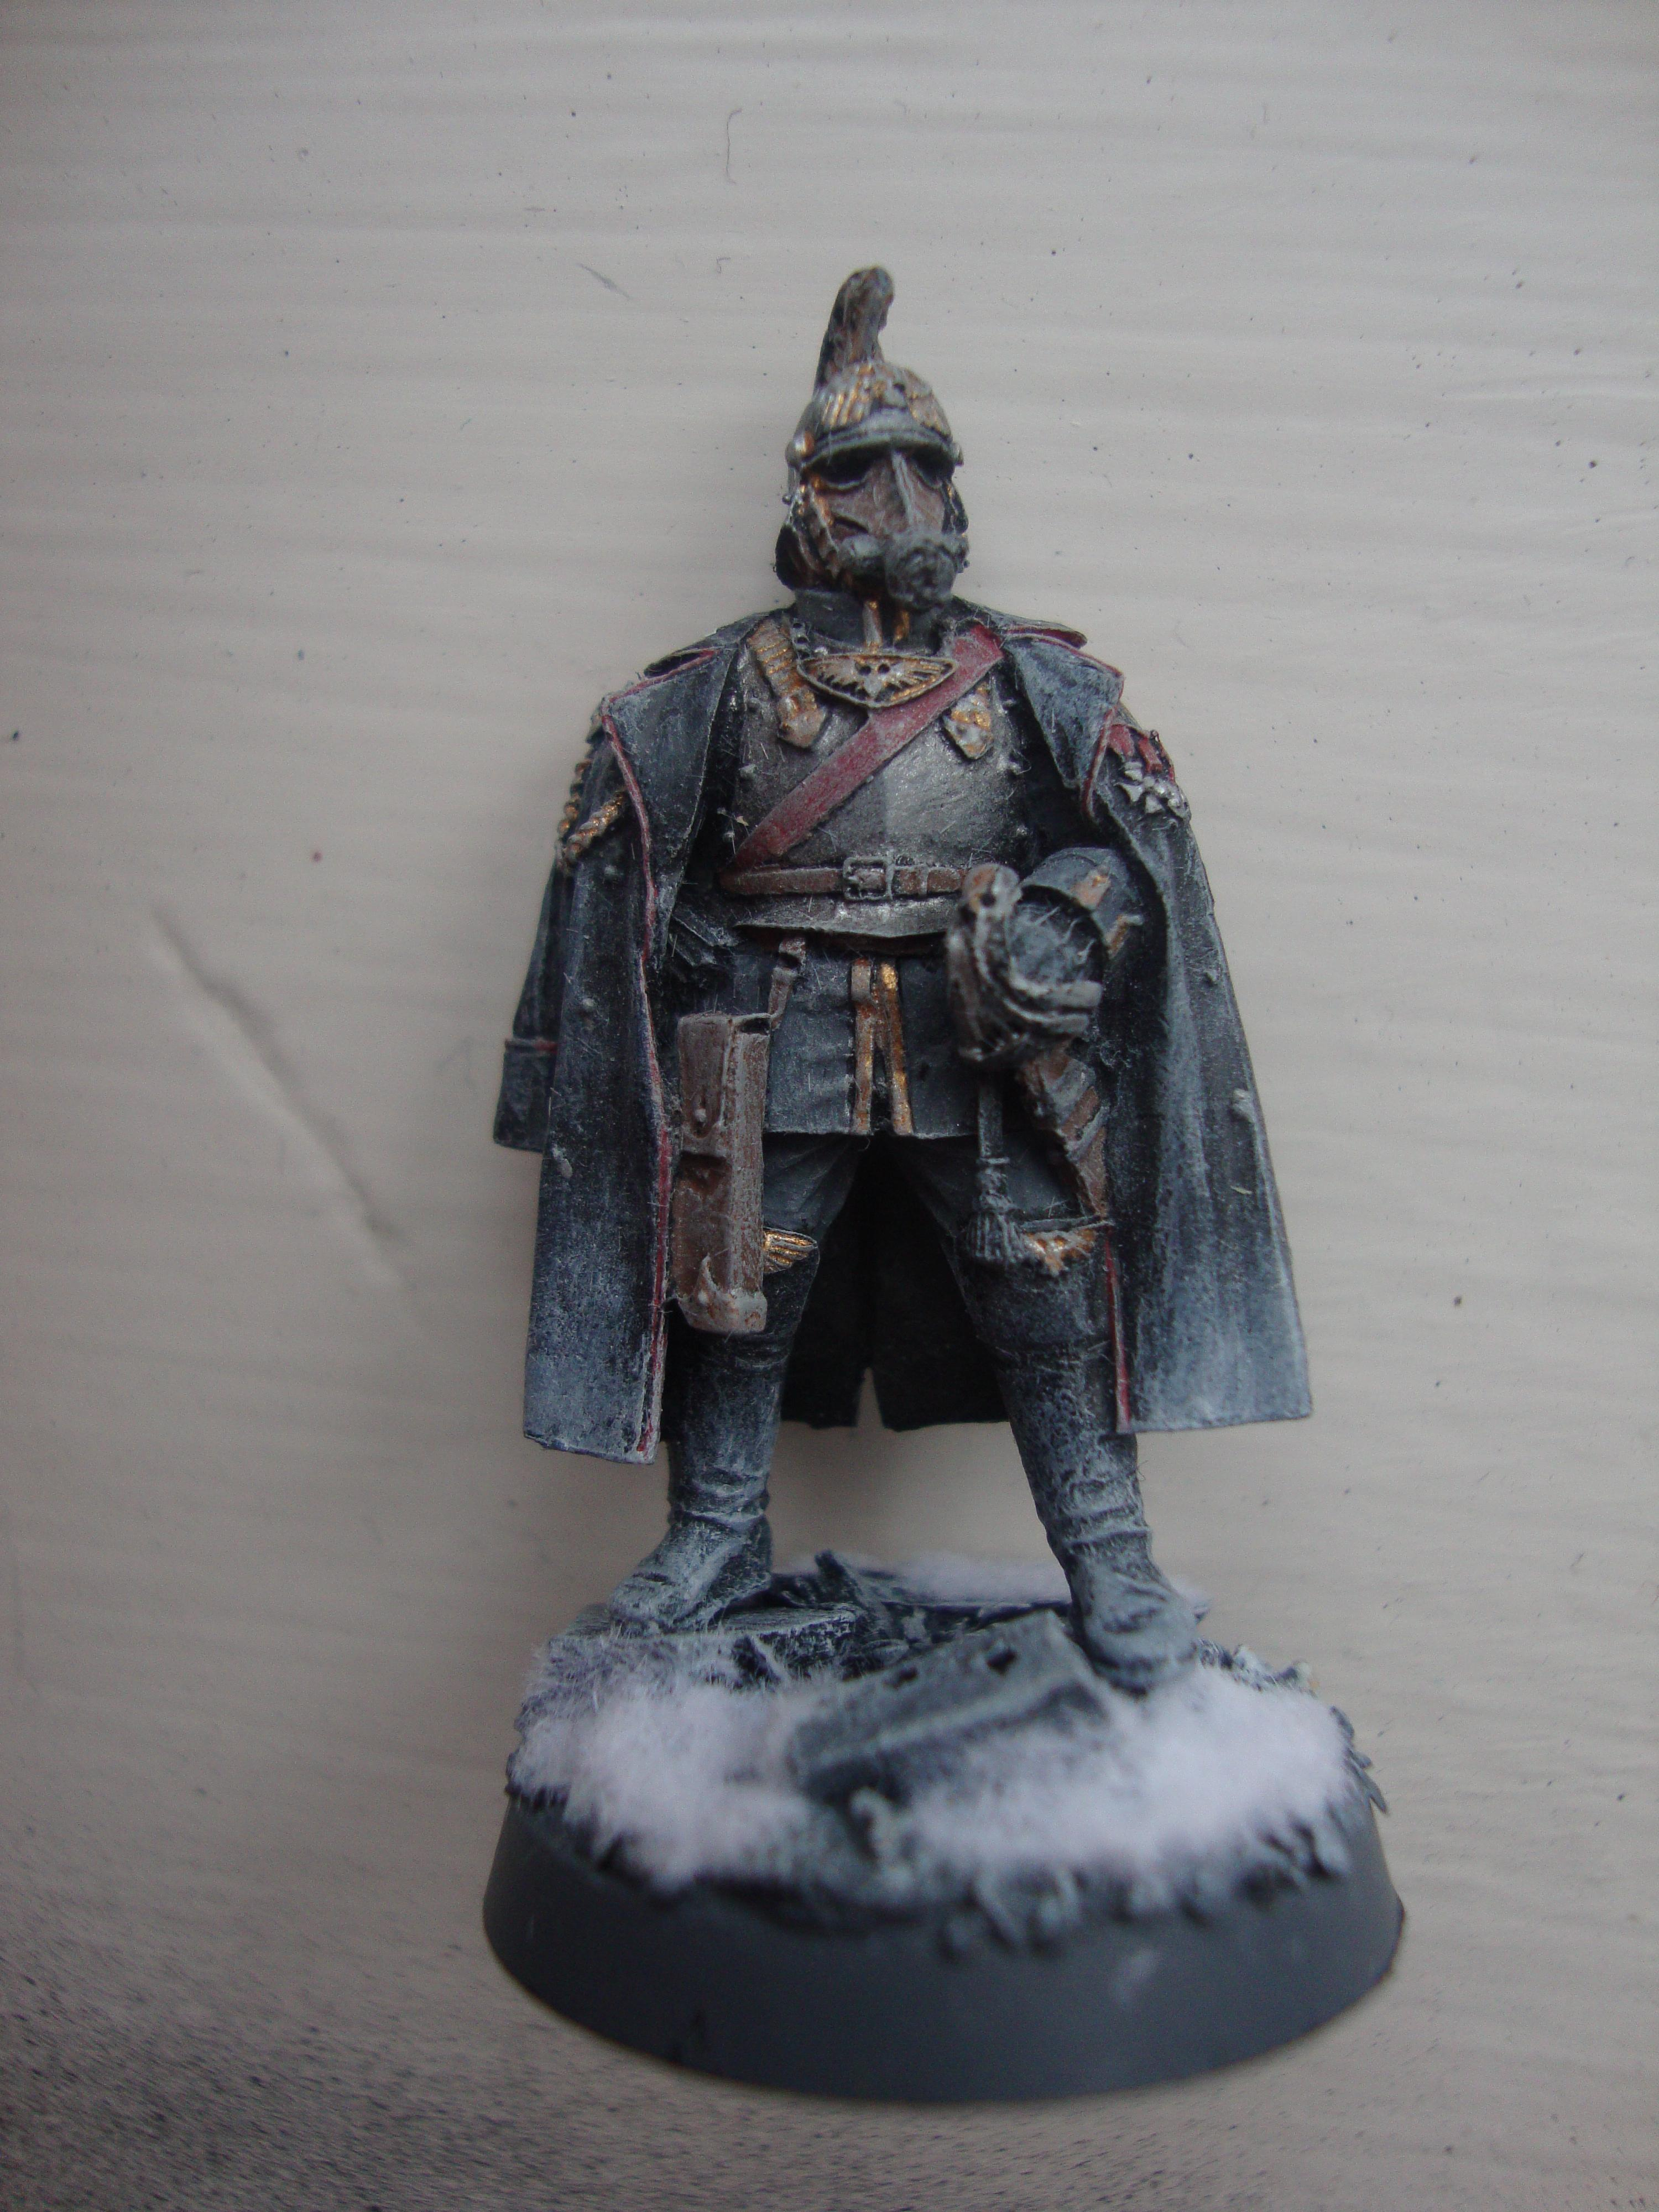 Captain, Commander, Death Korps of Krieg, Field Marshall, Forge World, General, Imperial Guard, Warhammer 40,000